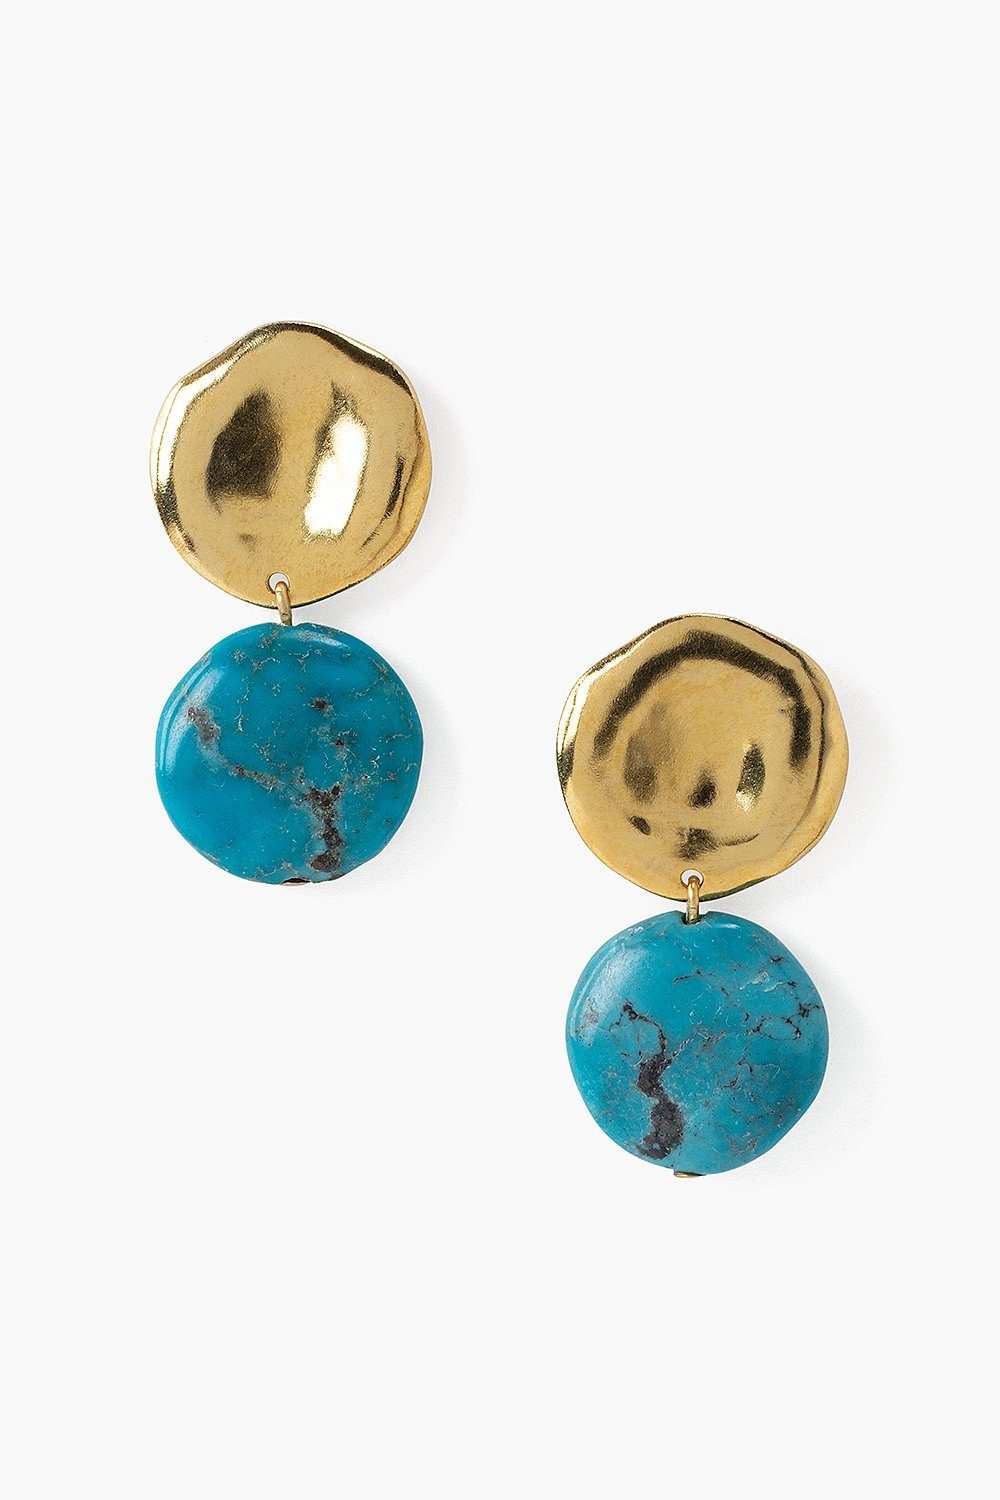 Two Tiered Turquoise and Gold Earrings